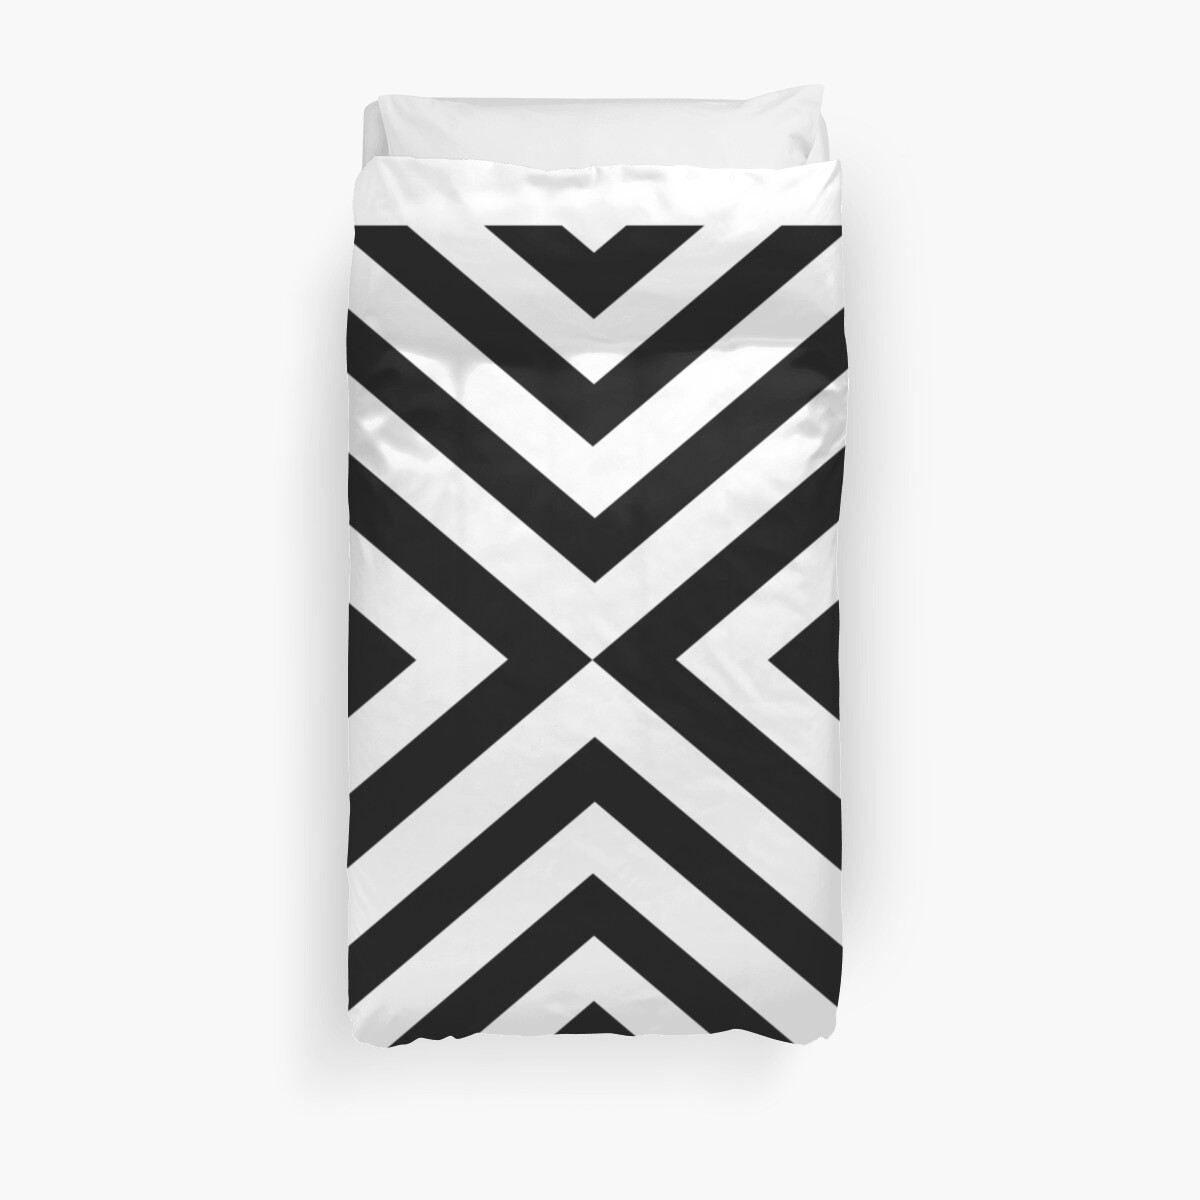 Abstract triangles geometric pattern - black and white. by kerens